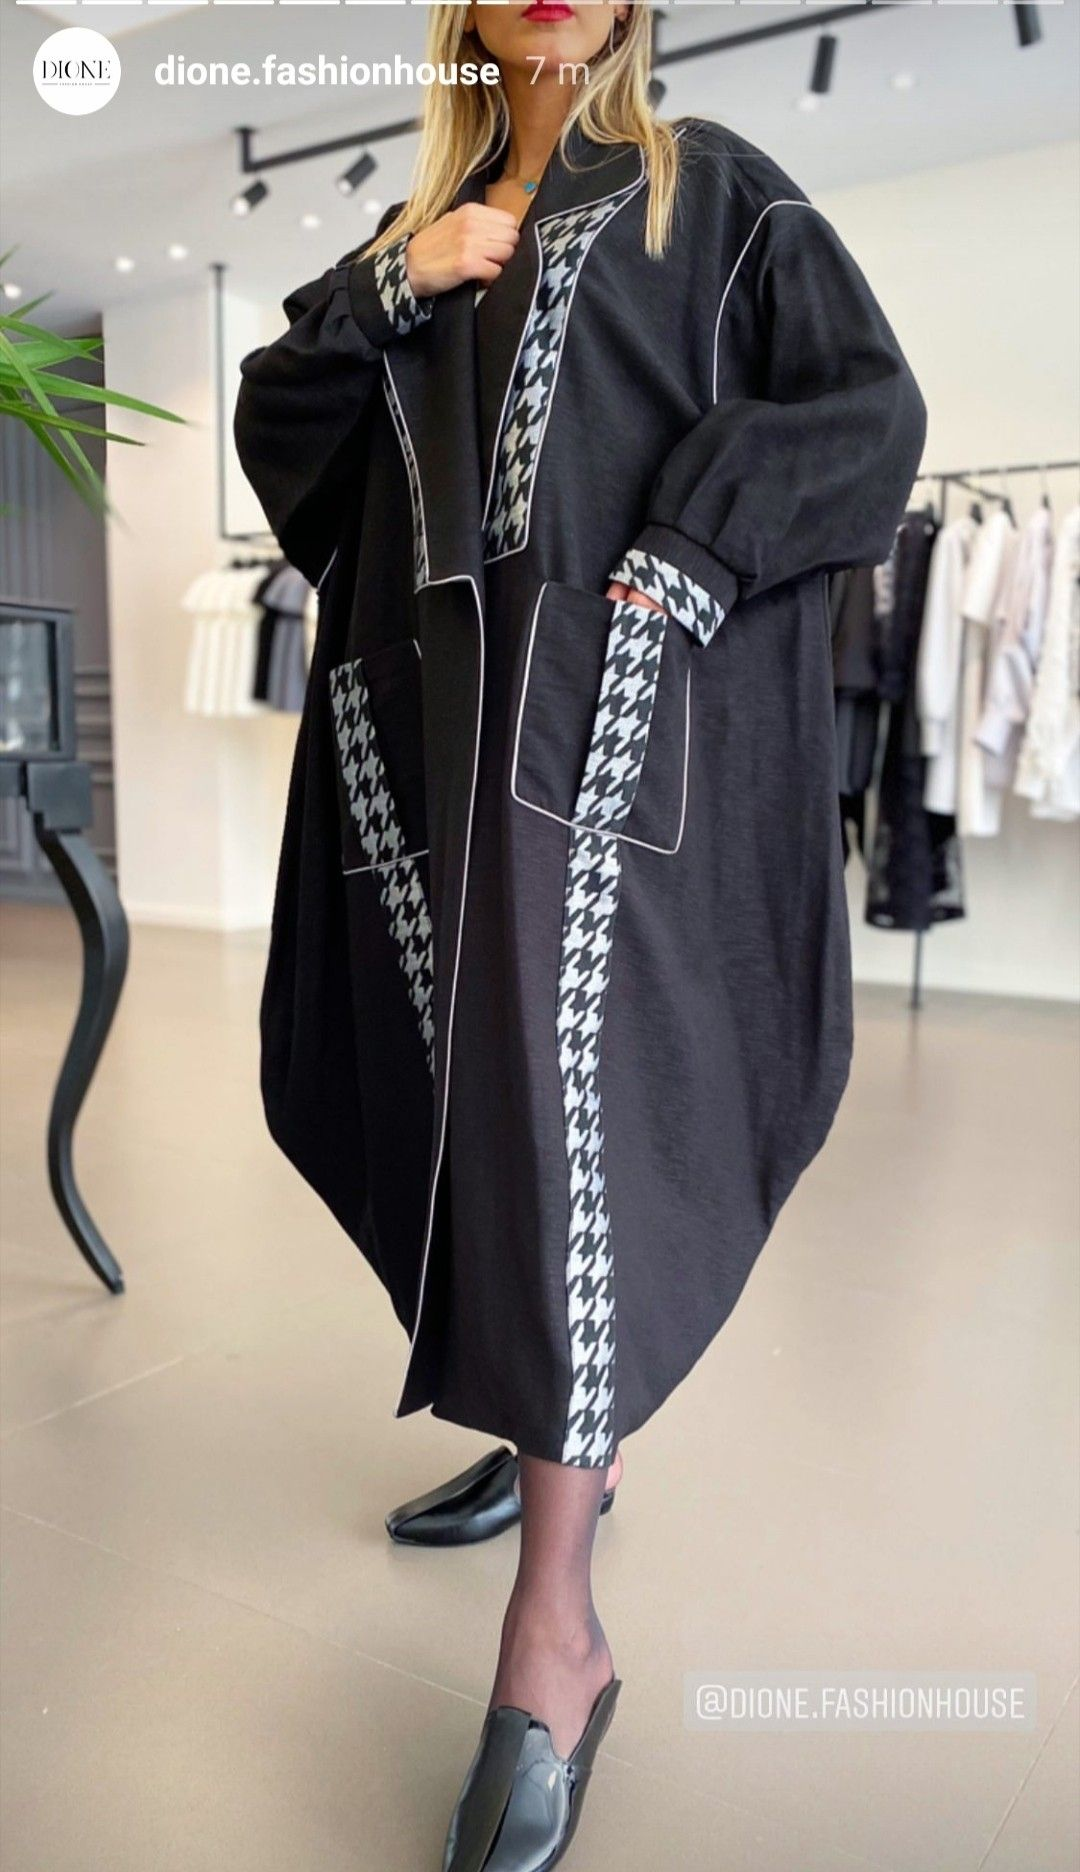 Pin By Wafa Alkhaldi On Sewing In 2021 Fashion Design Clothes Woman Suit Fashion Abayas Fashion